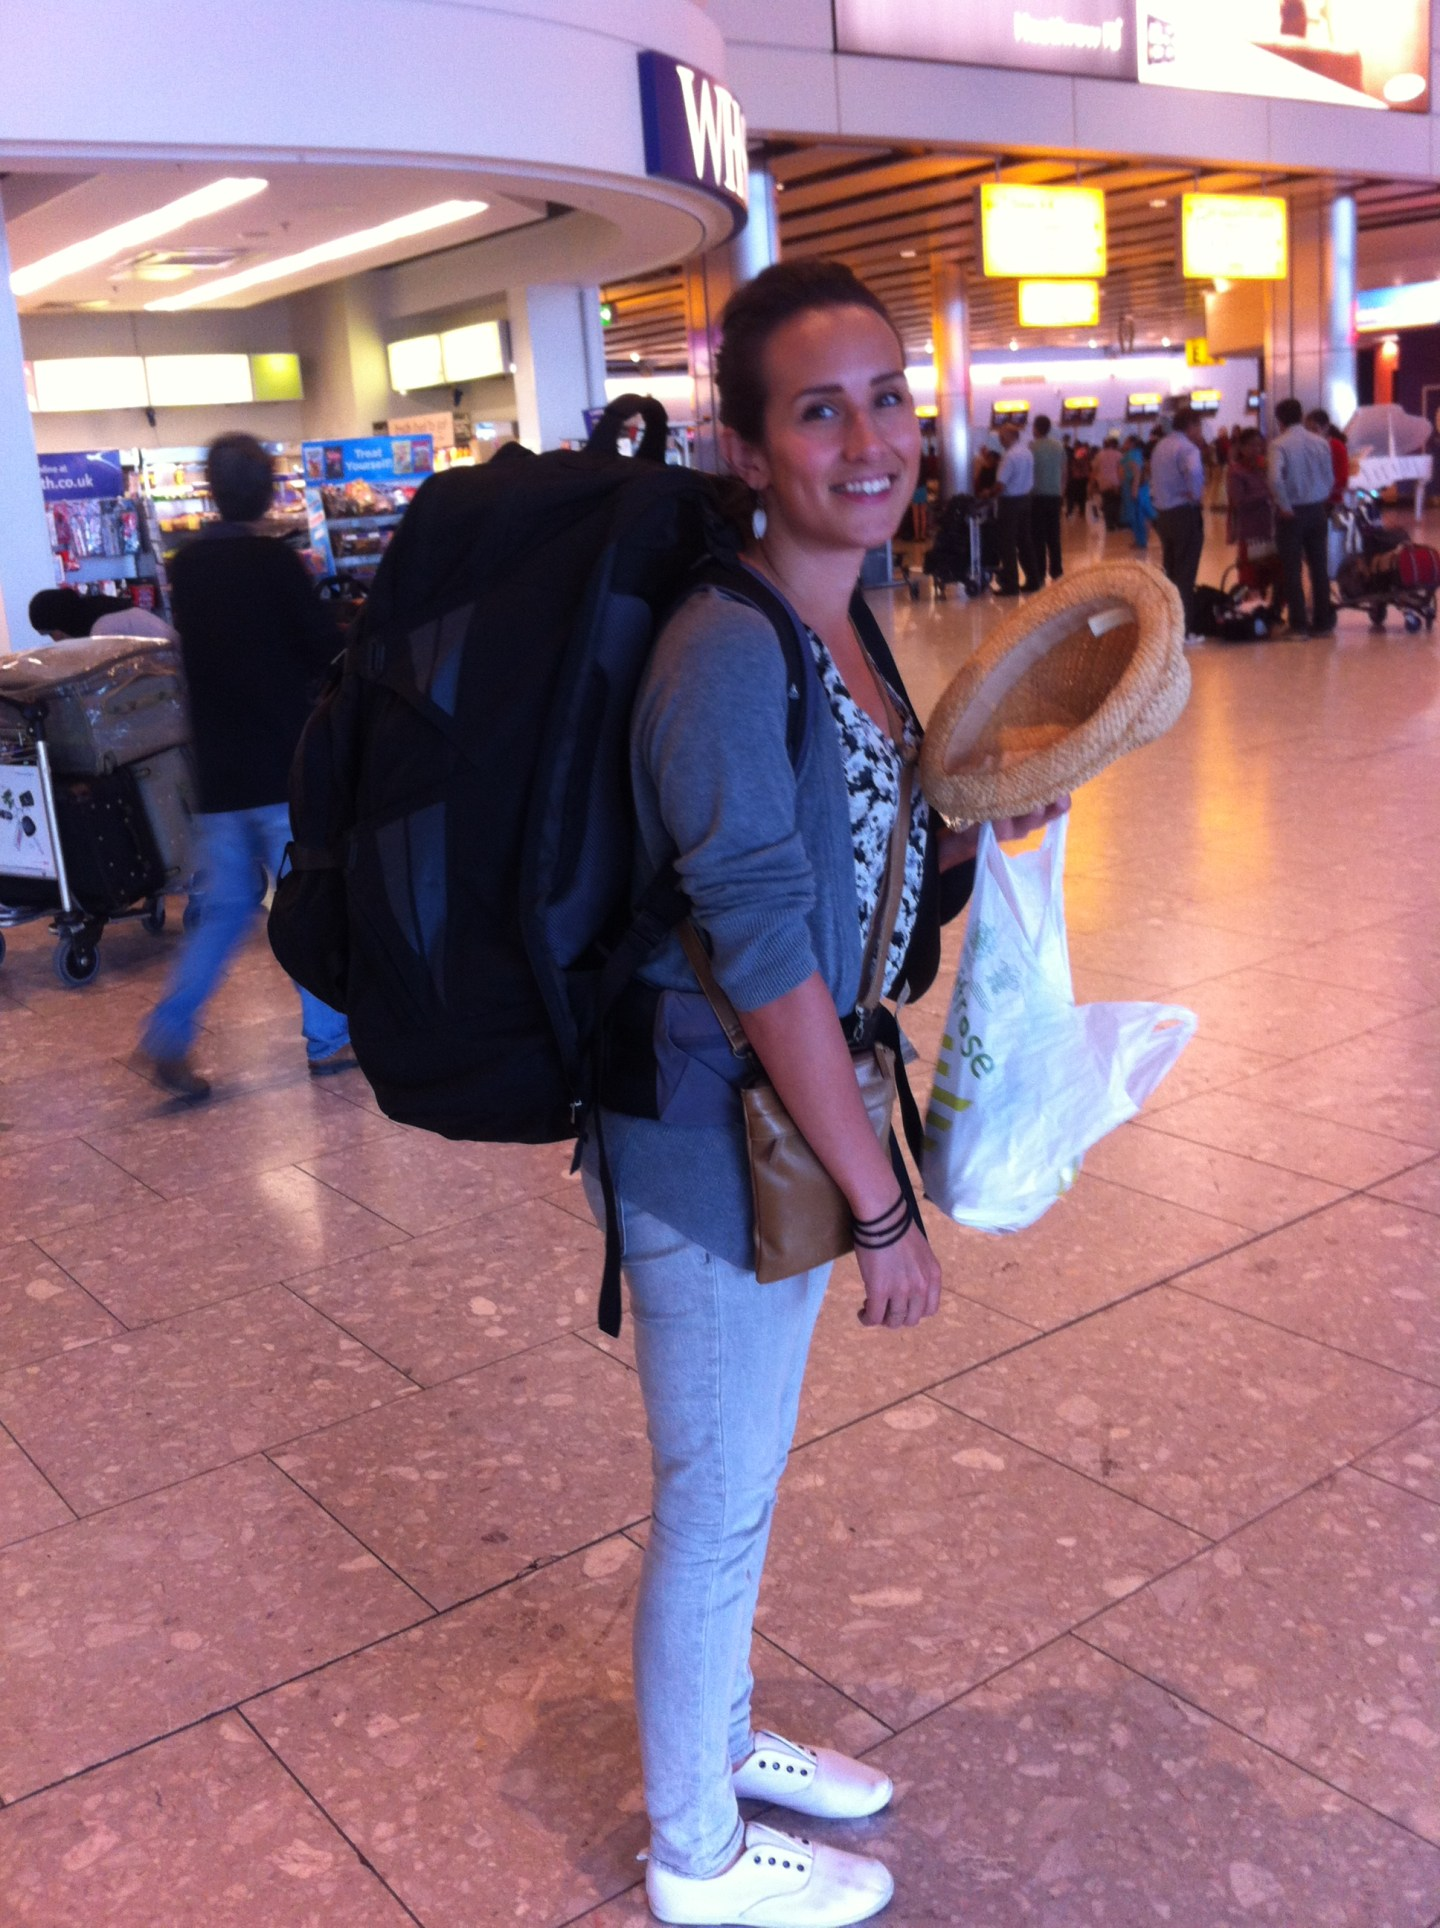 The perils of long haul travel - backpacks and back ache!